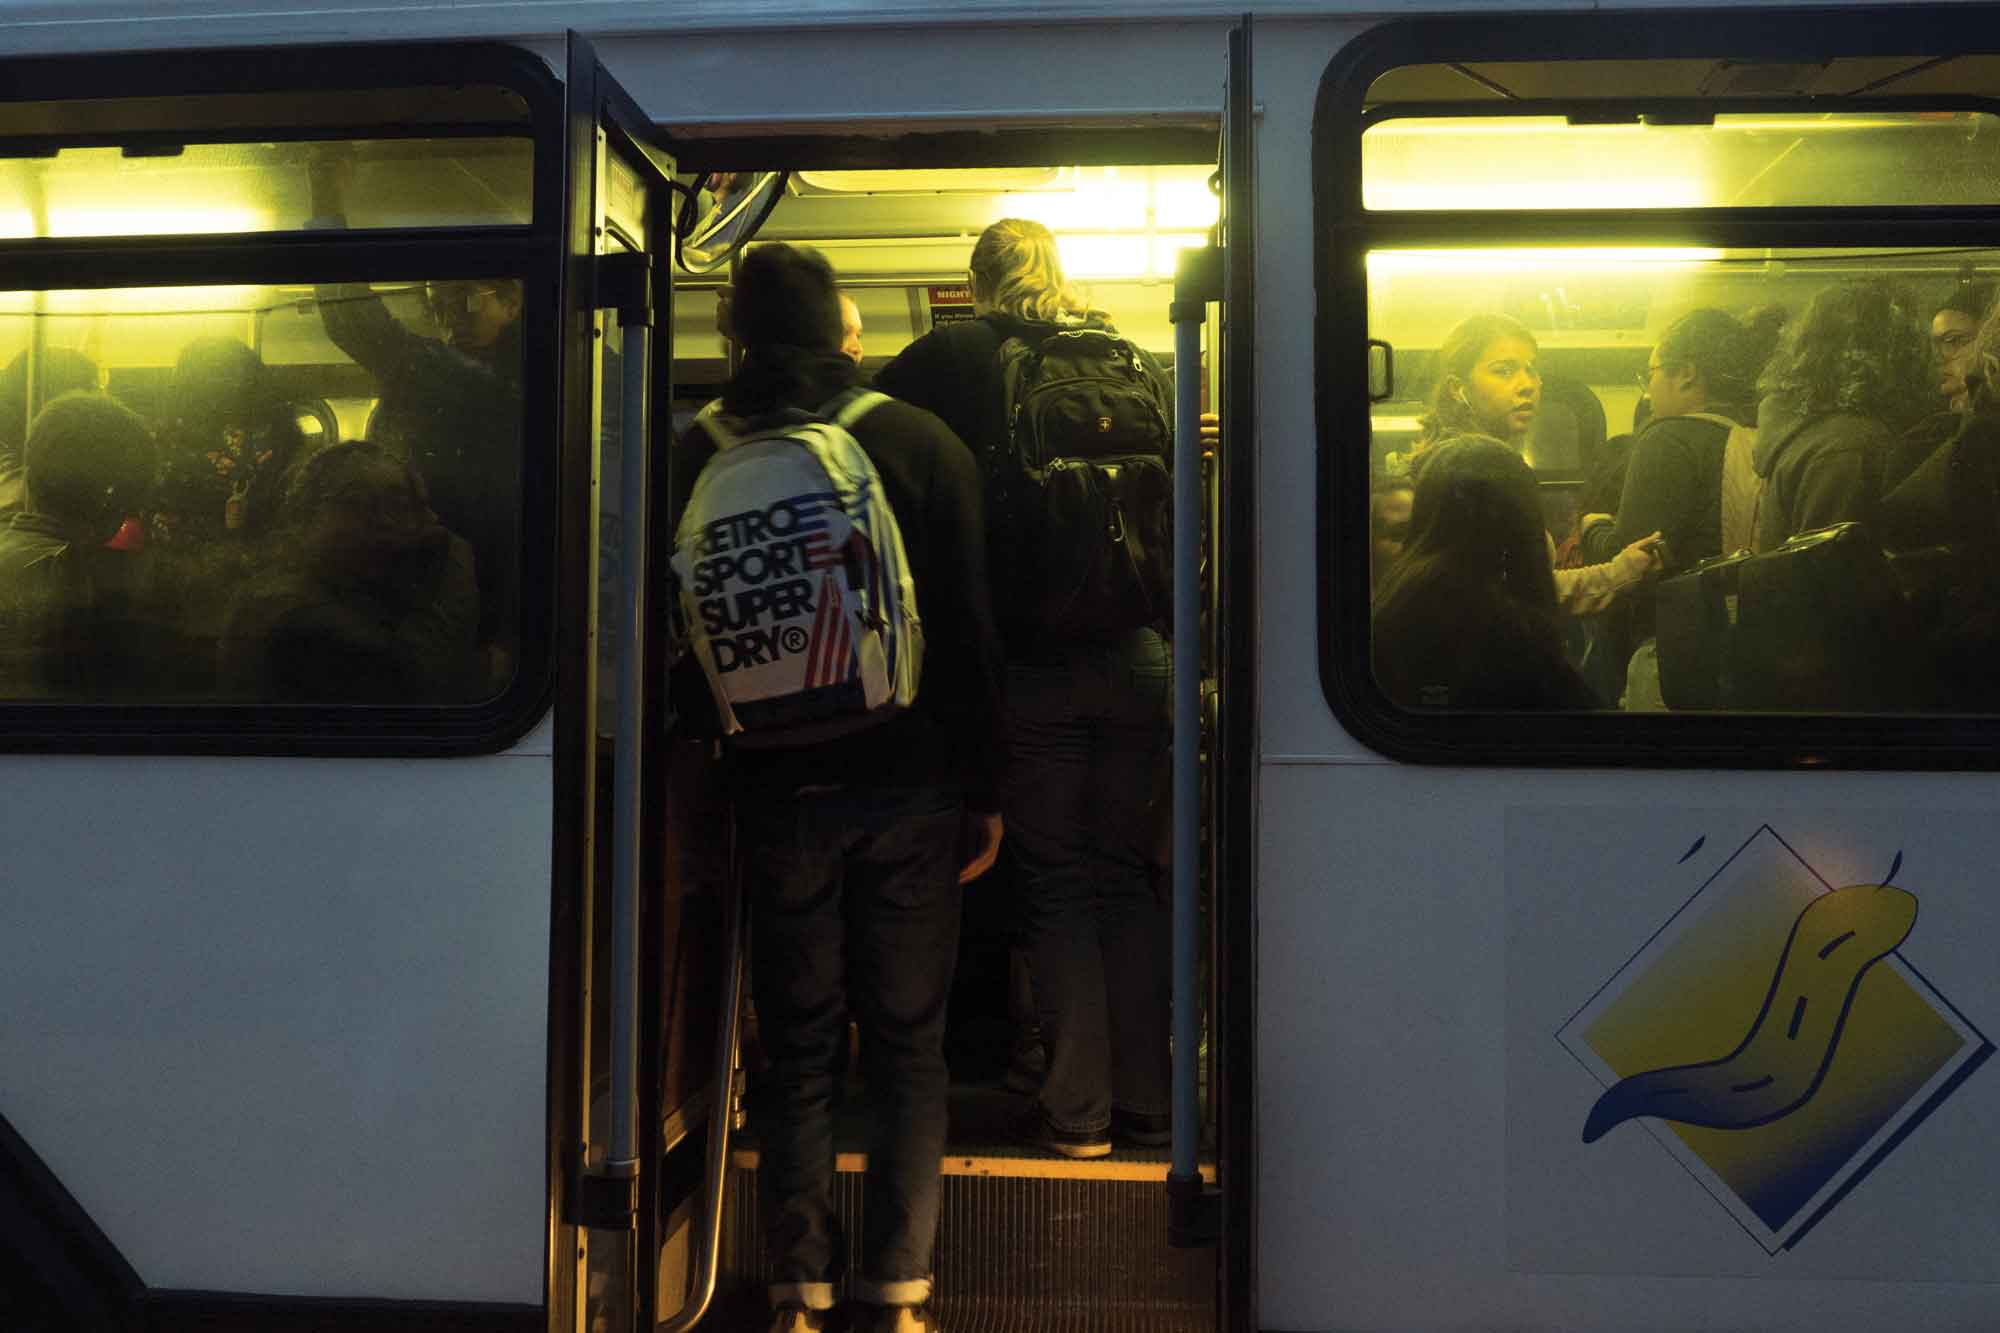 Student Commuters Burdened by Overcrowding